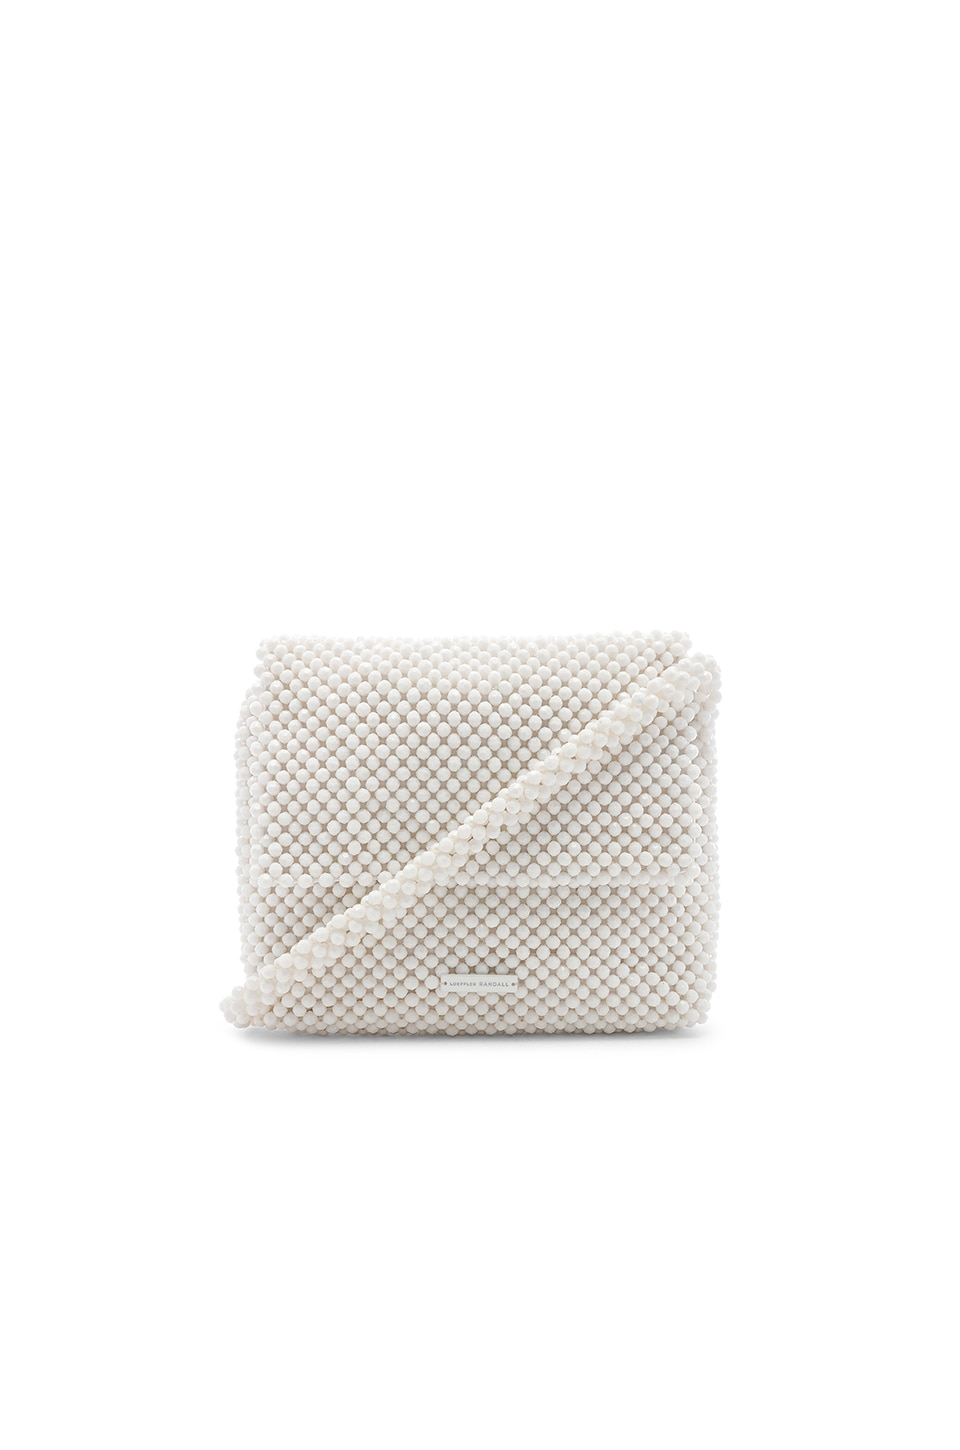 Loeffler Randall Roz Beaded Shoulder Bag in Optic White